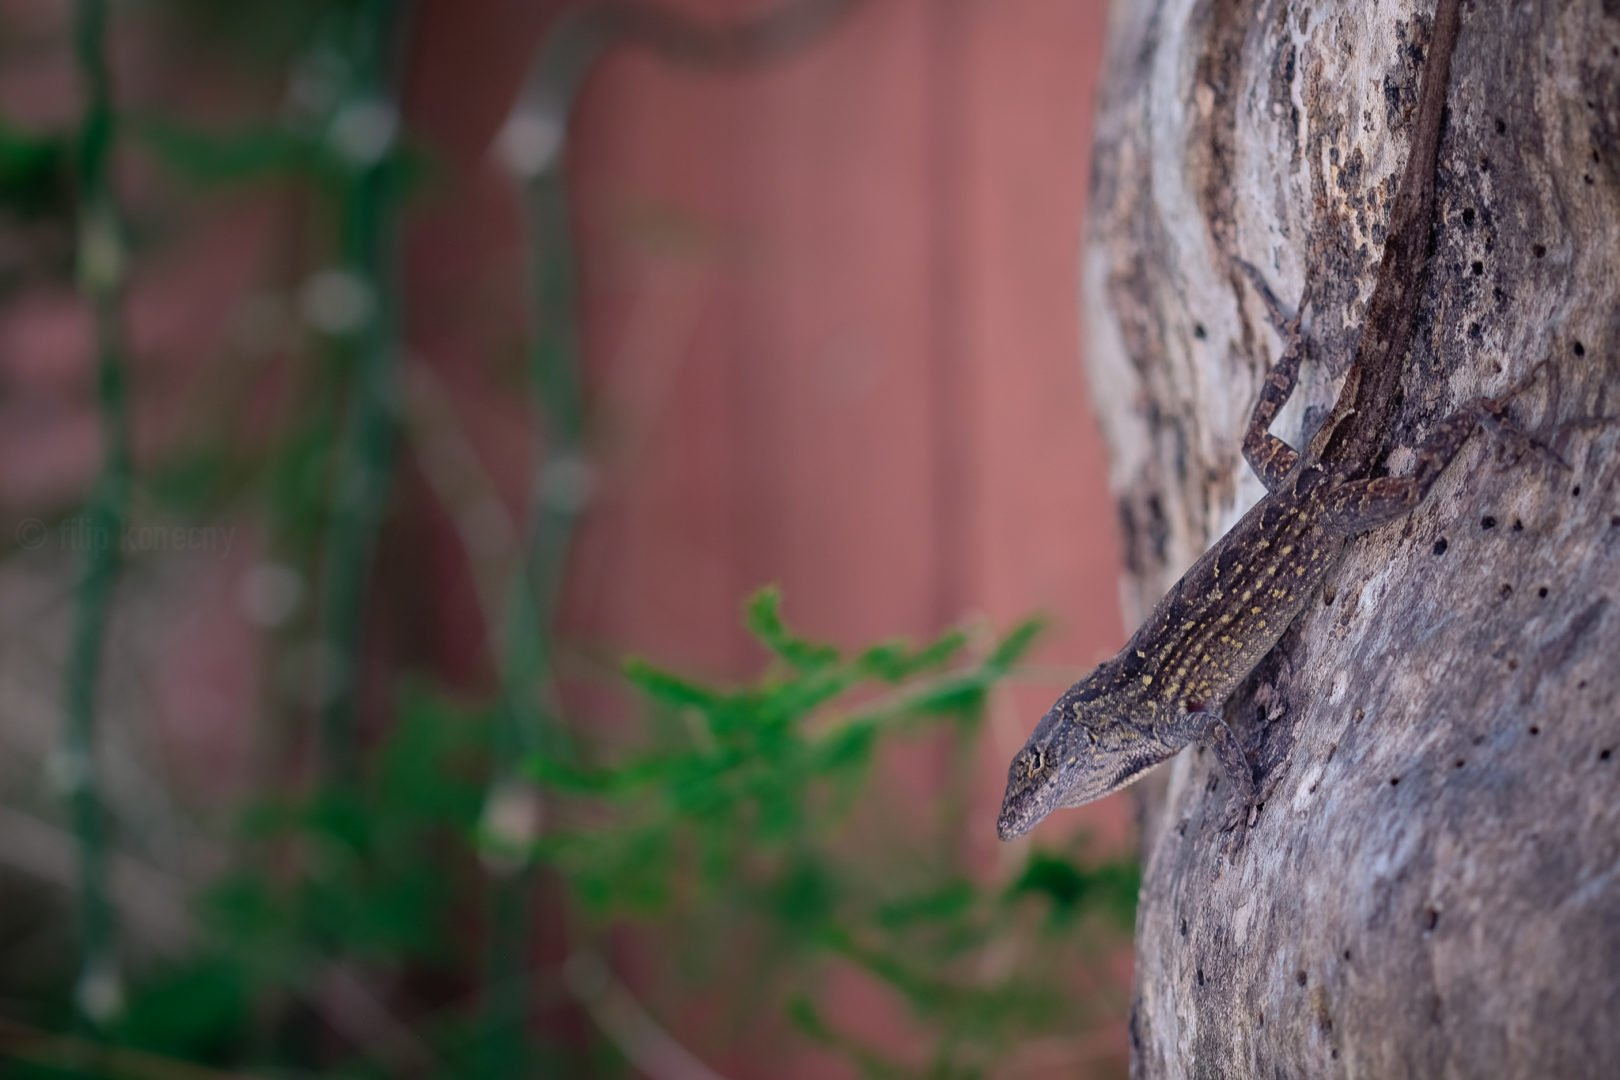 lizard blending on a tree trunk